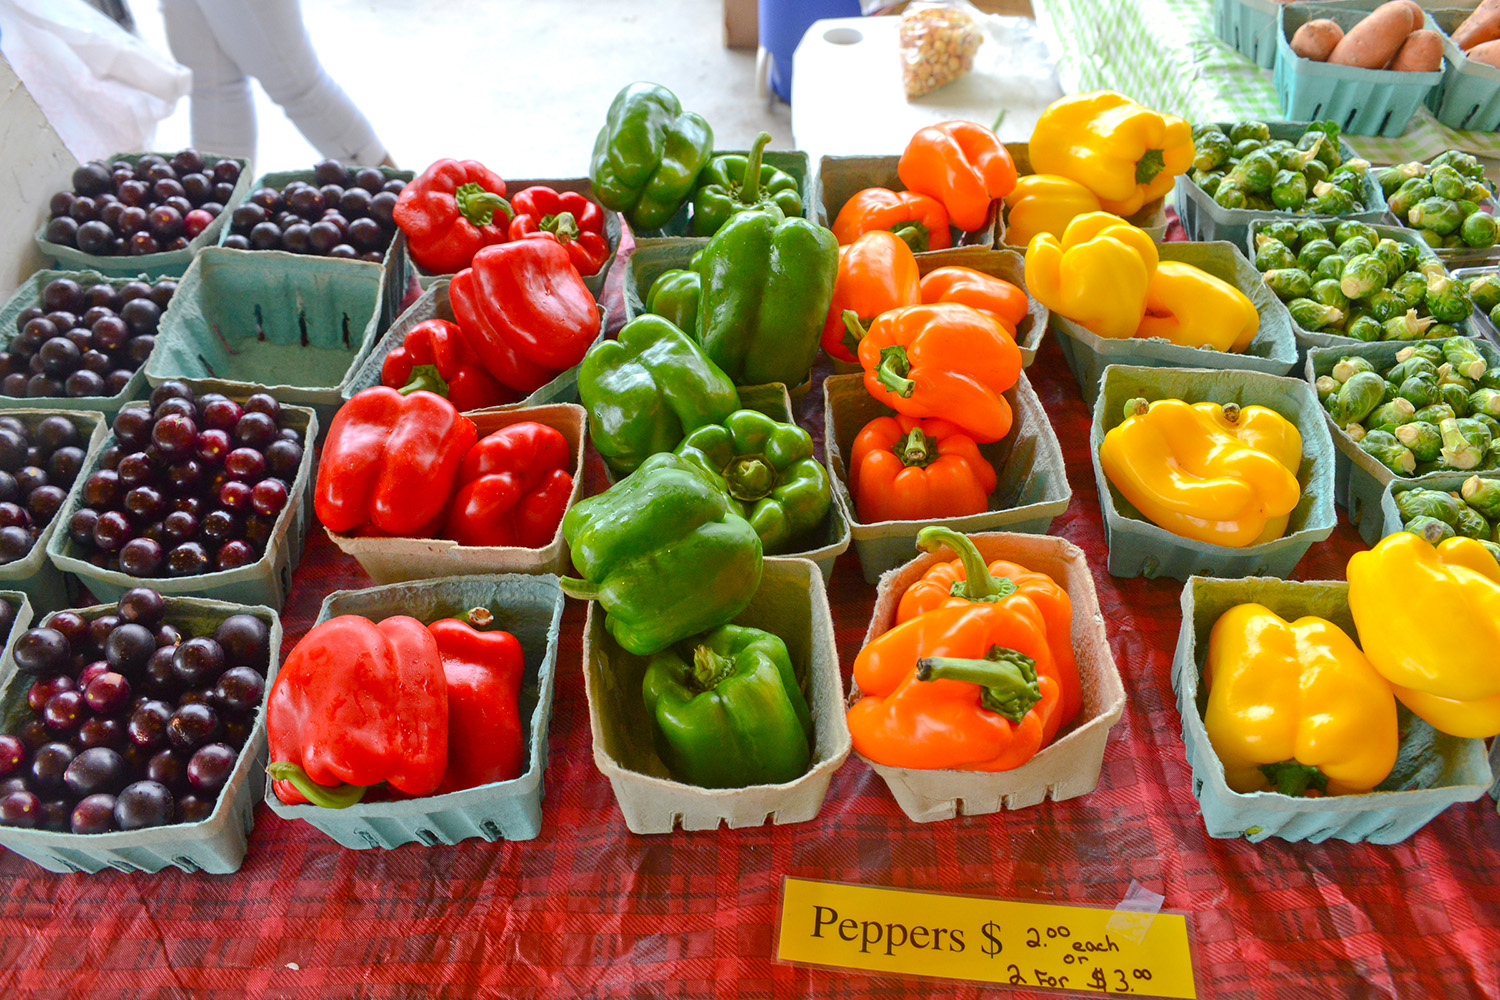 Johns Creek Farmers Market 2017 season ends Aug. 26